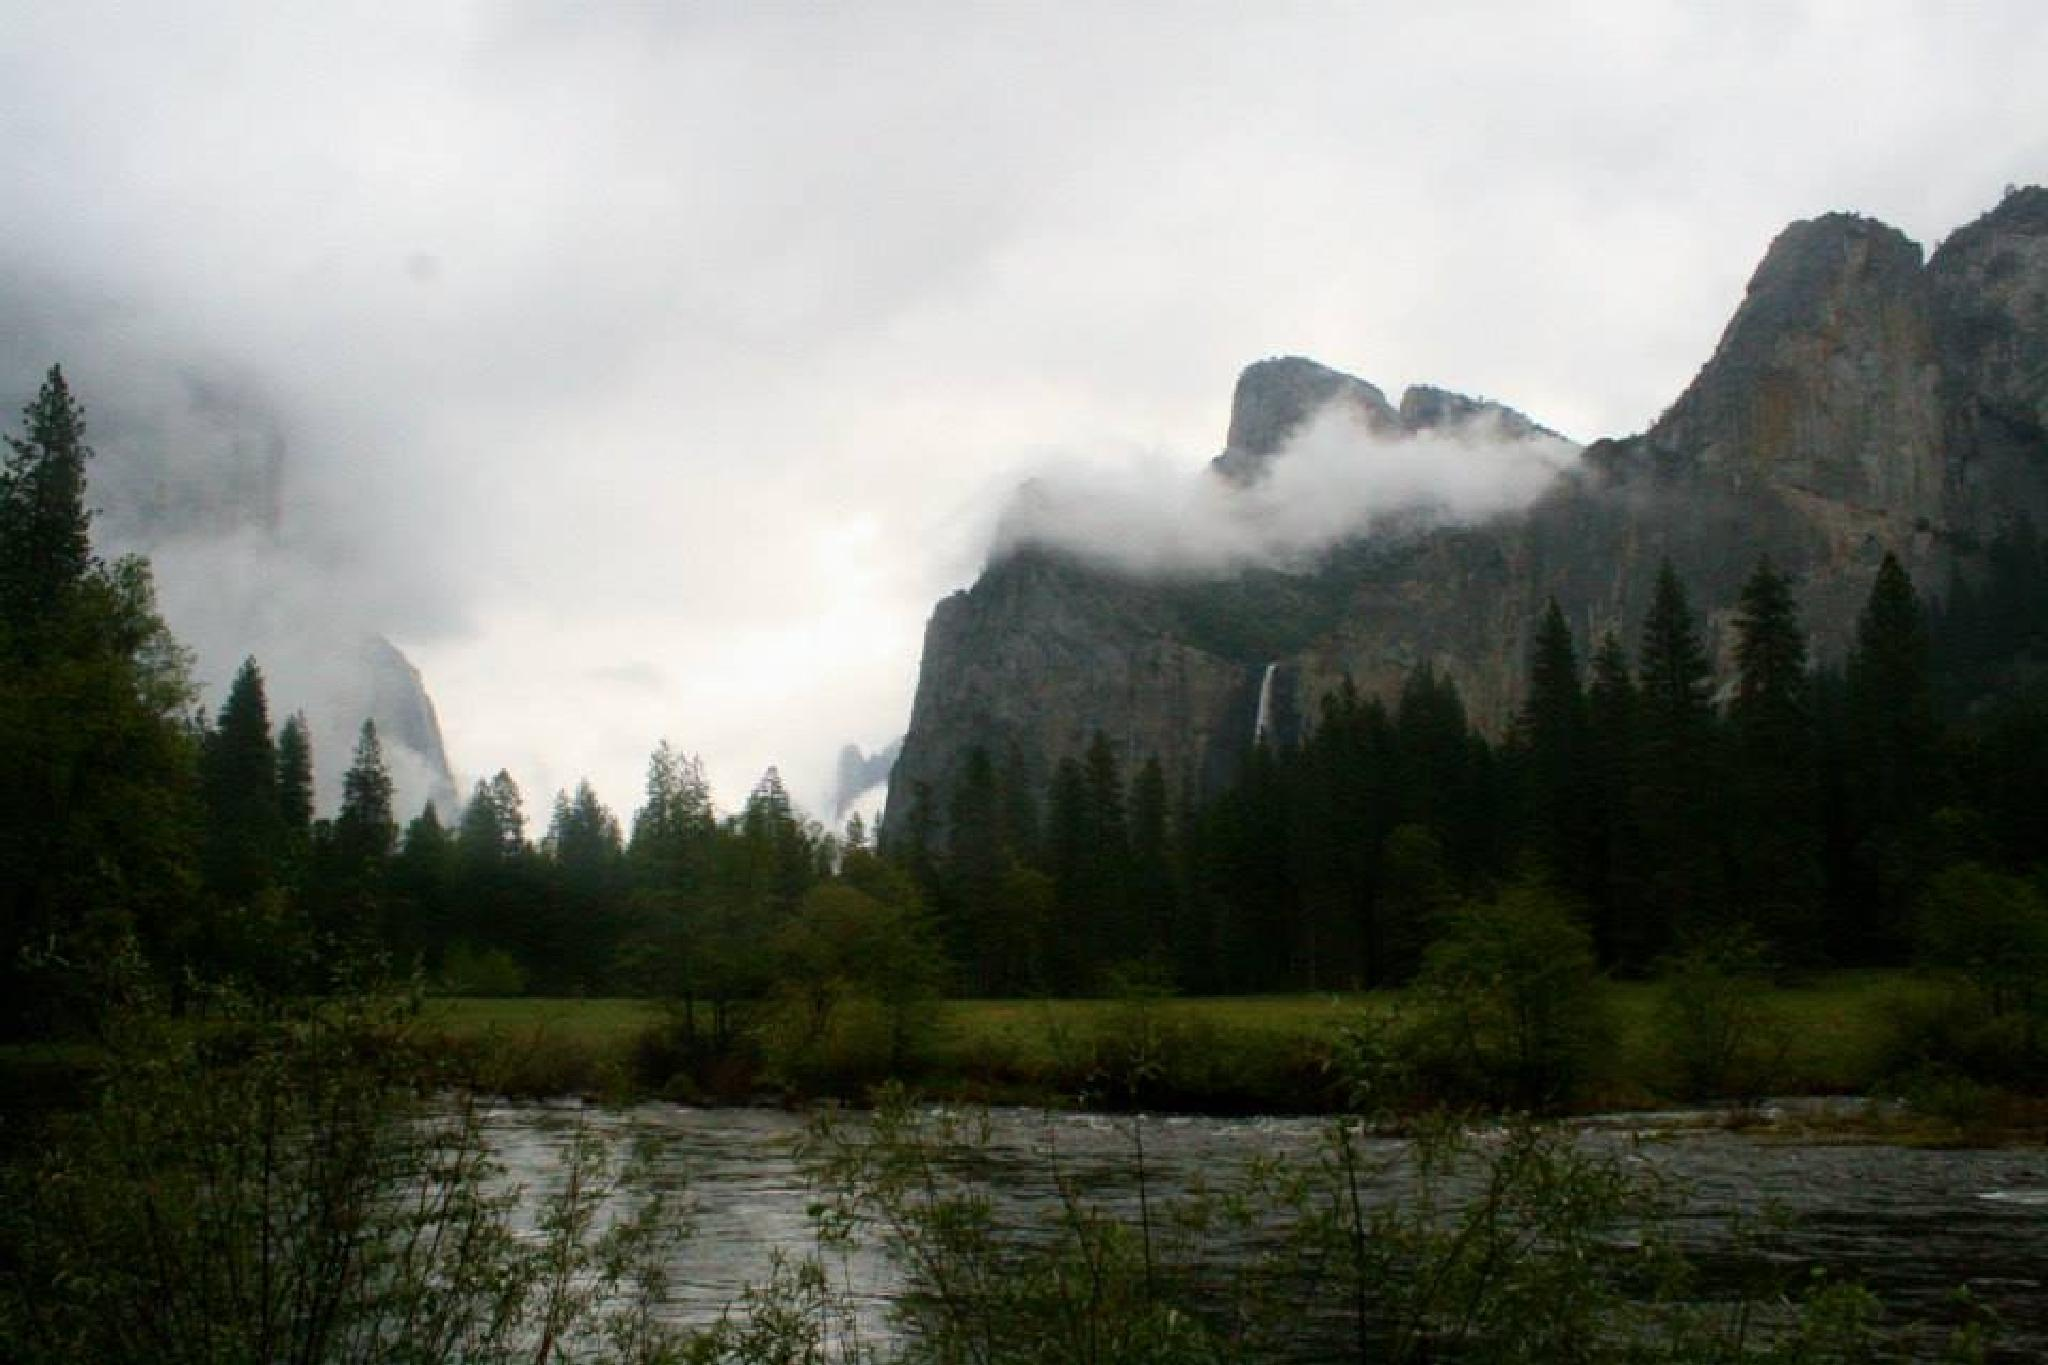 Cloudy Yosemite by sandy.darnstaedt